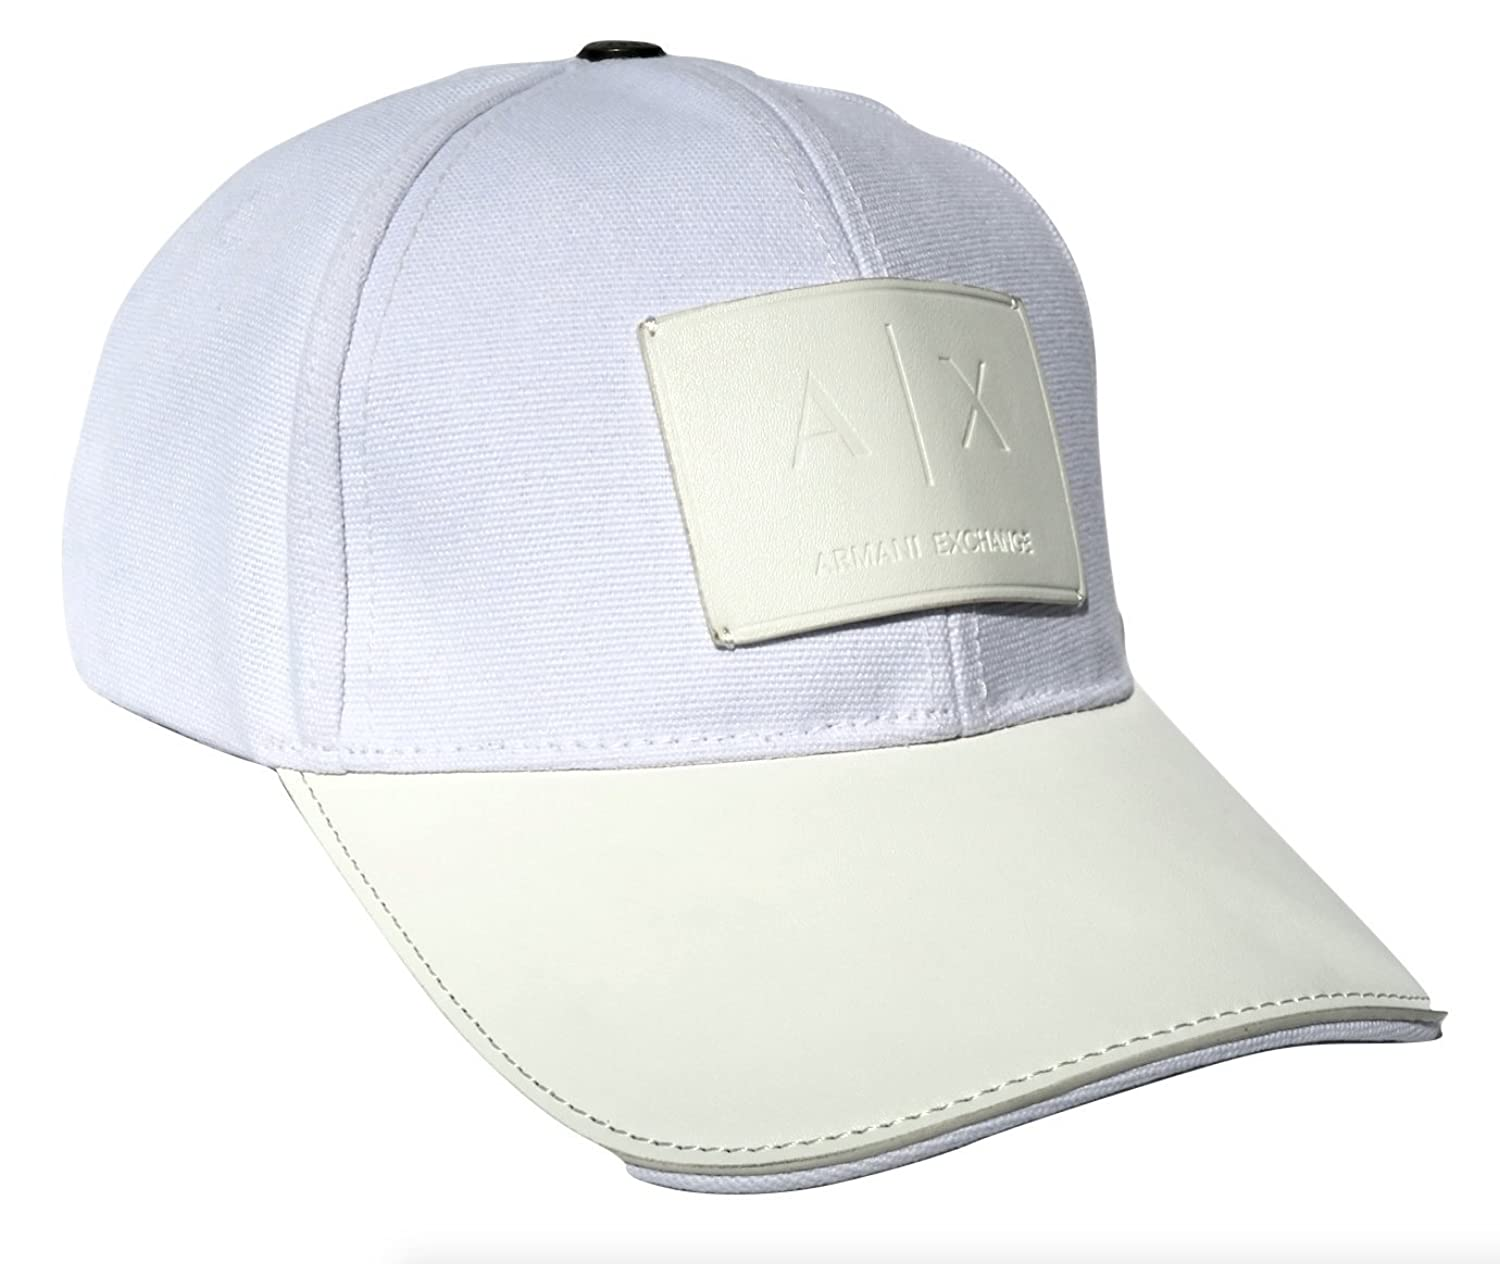 9de153e0 Top2: Armani Exchange Leather Patch Baseball Hat, White, One Size/  Adjustable